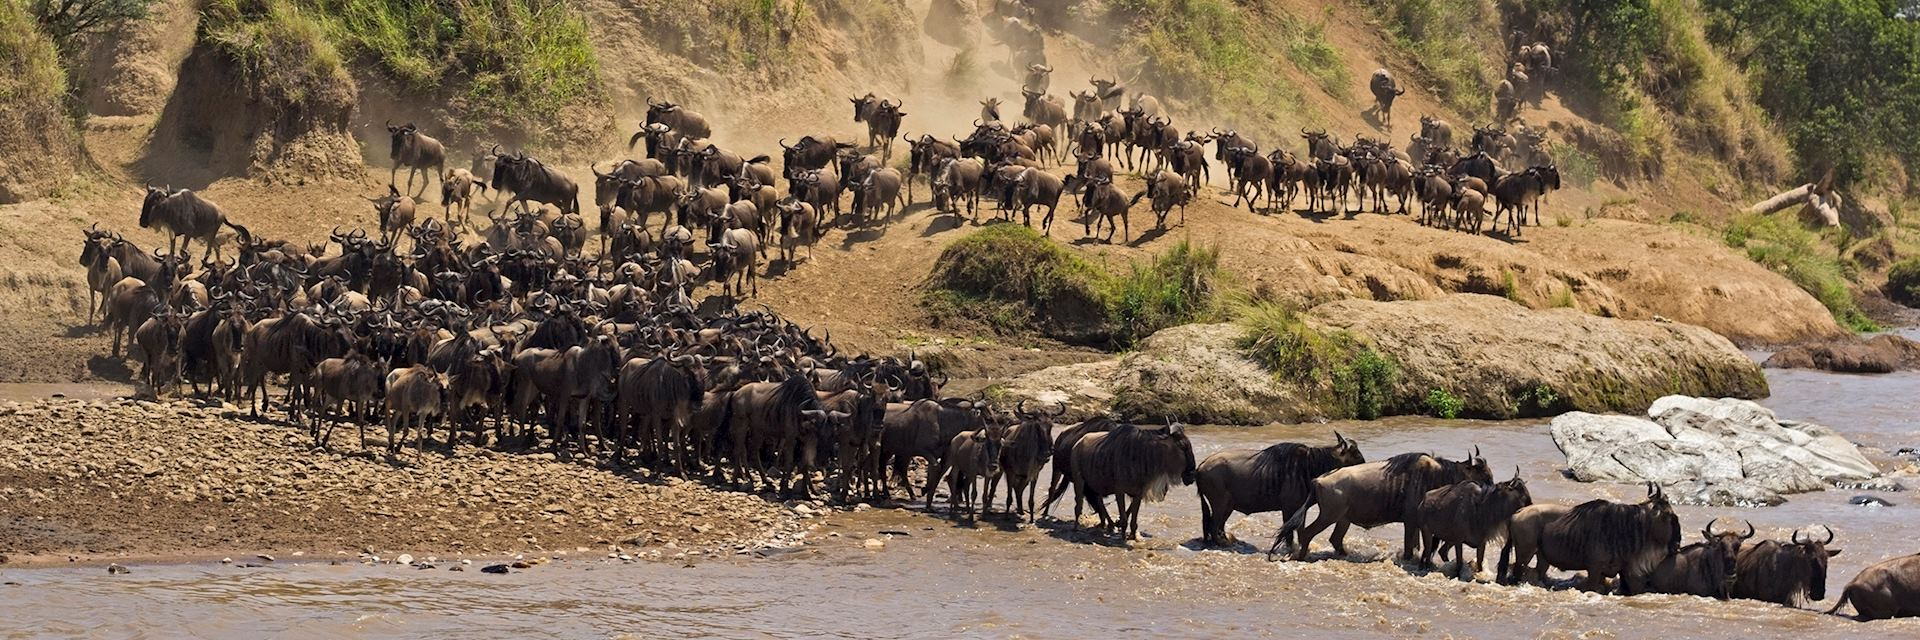 Wildebeest river crossing, Kenya